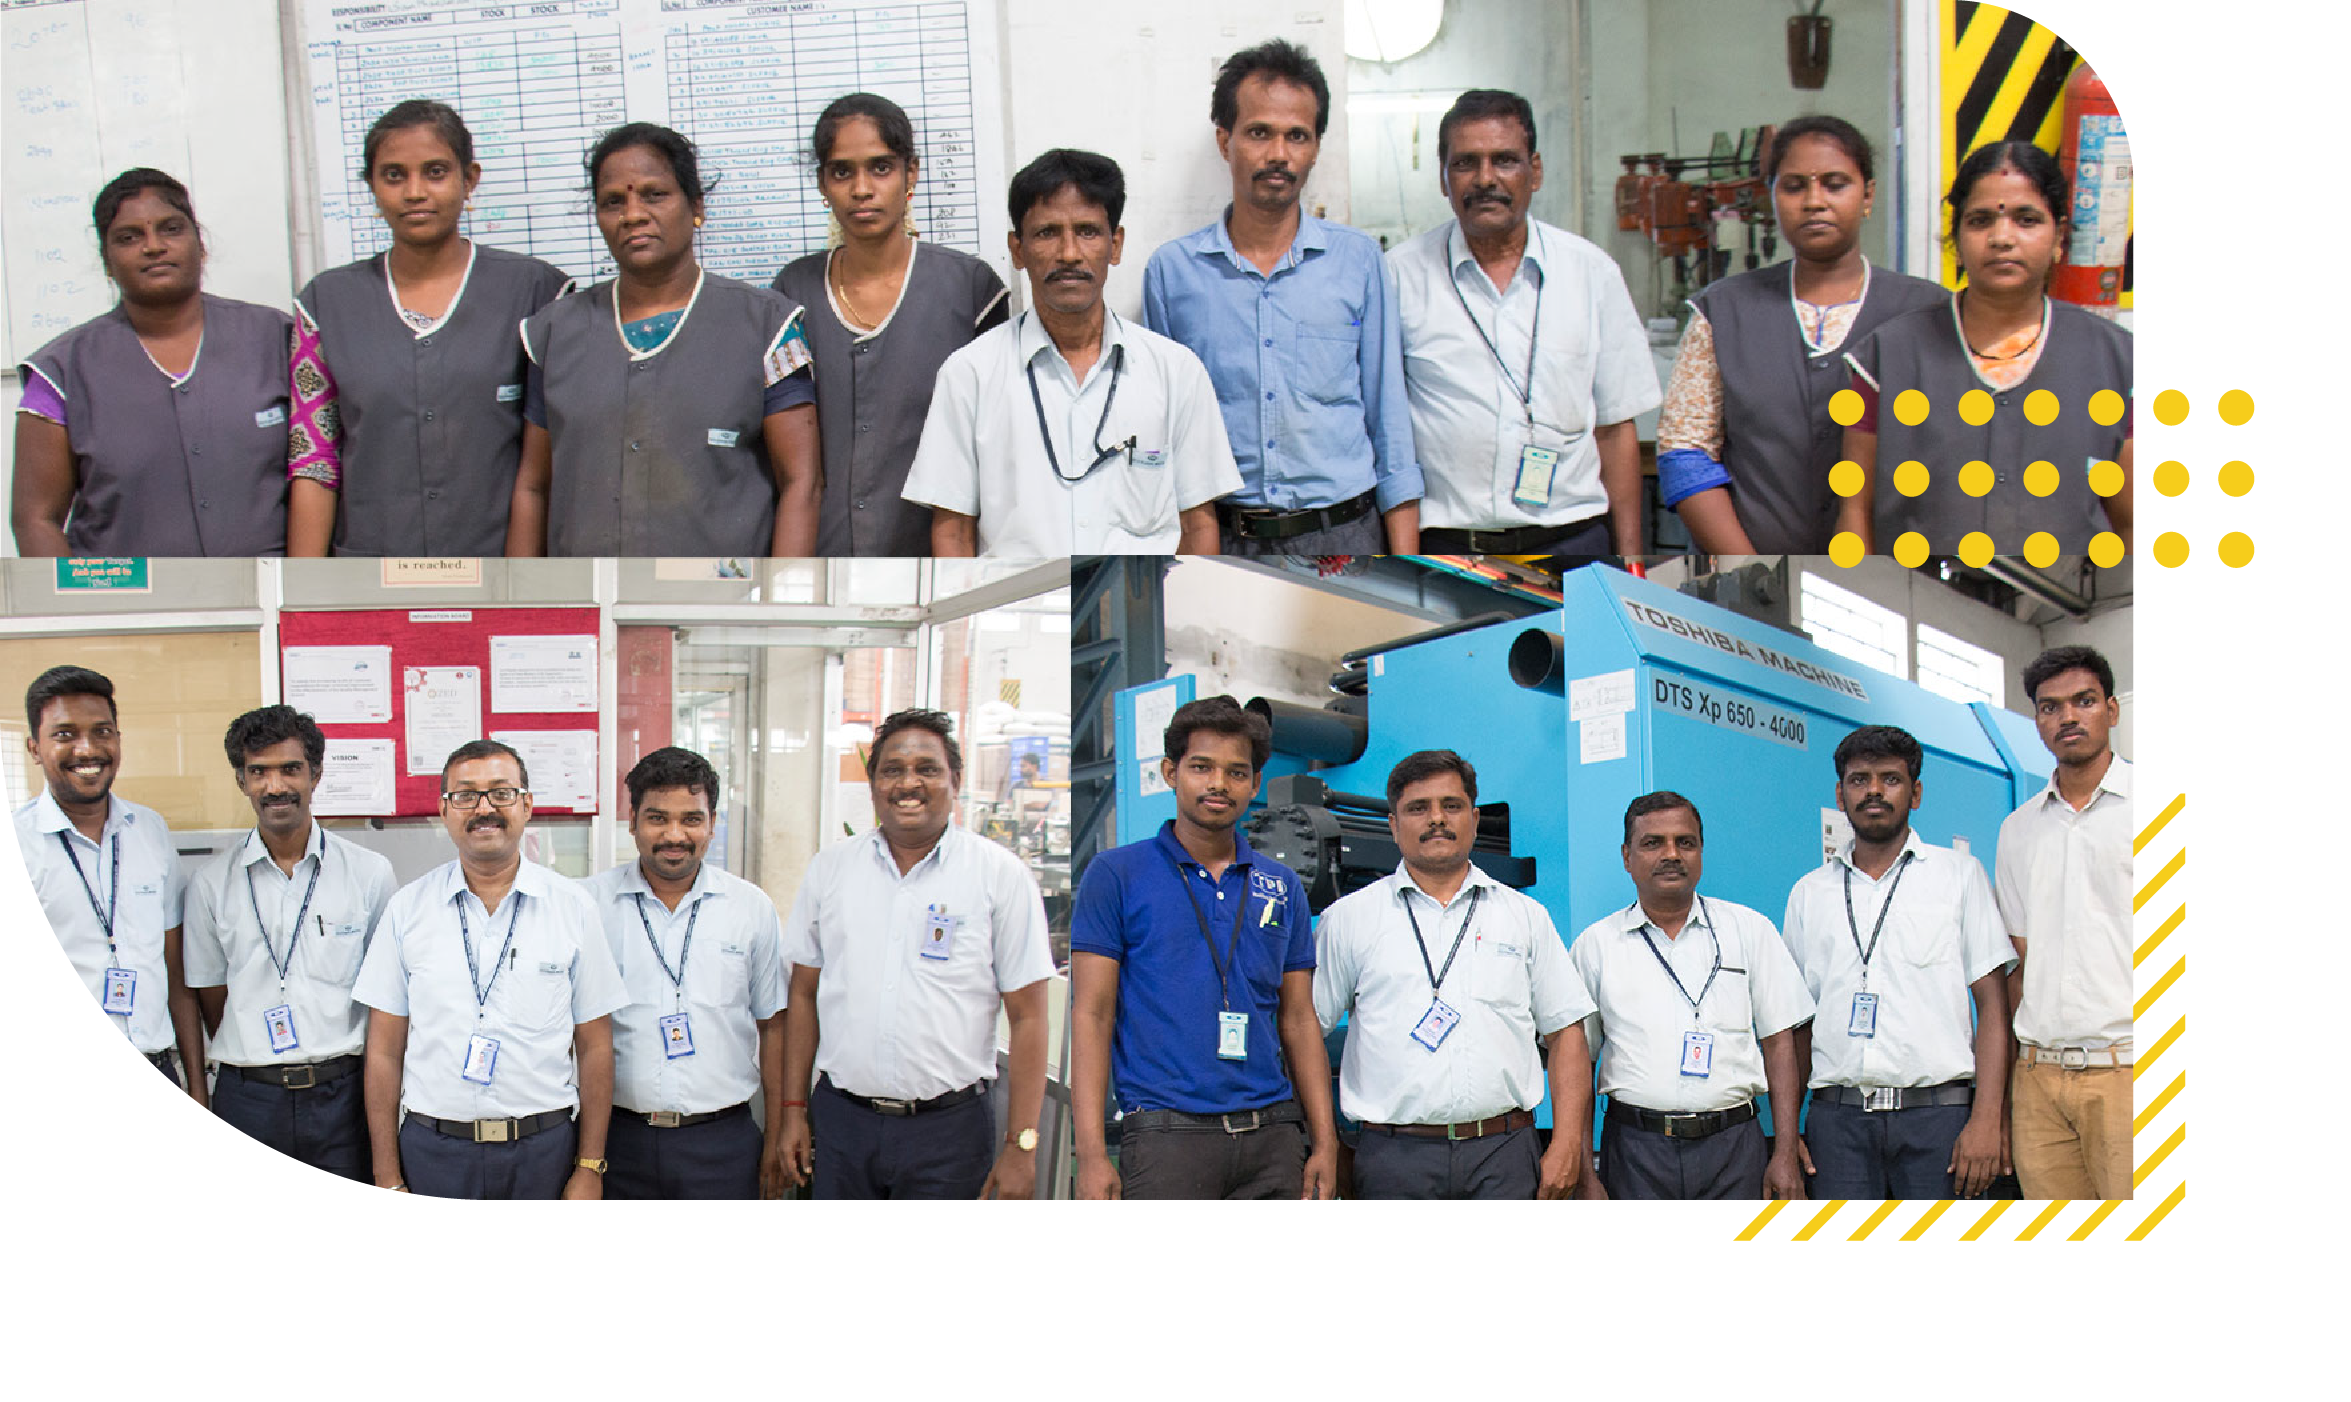 Group photo of staffs working in Techplaastic Industrie pvt Ltd -Best plastic molding manufacturing company in India displayed in Two rows